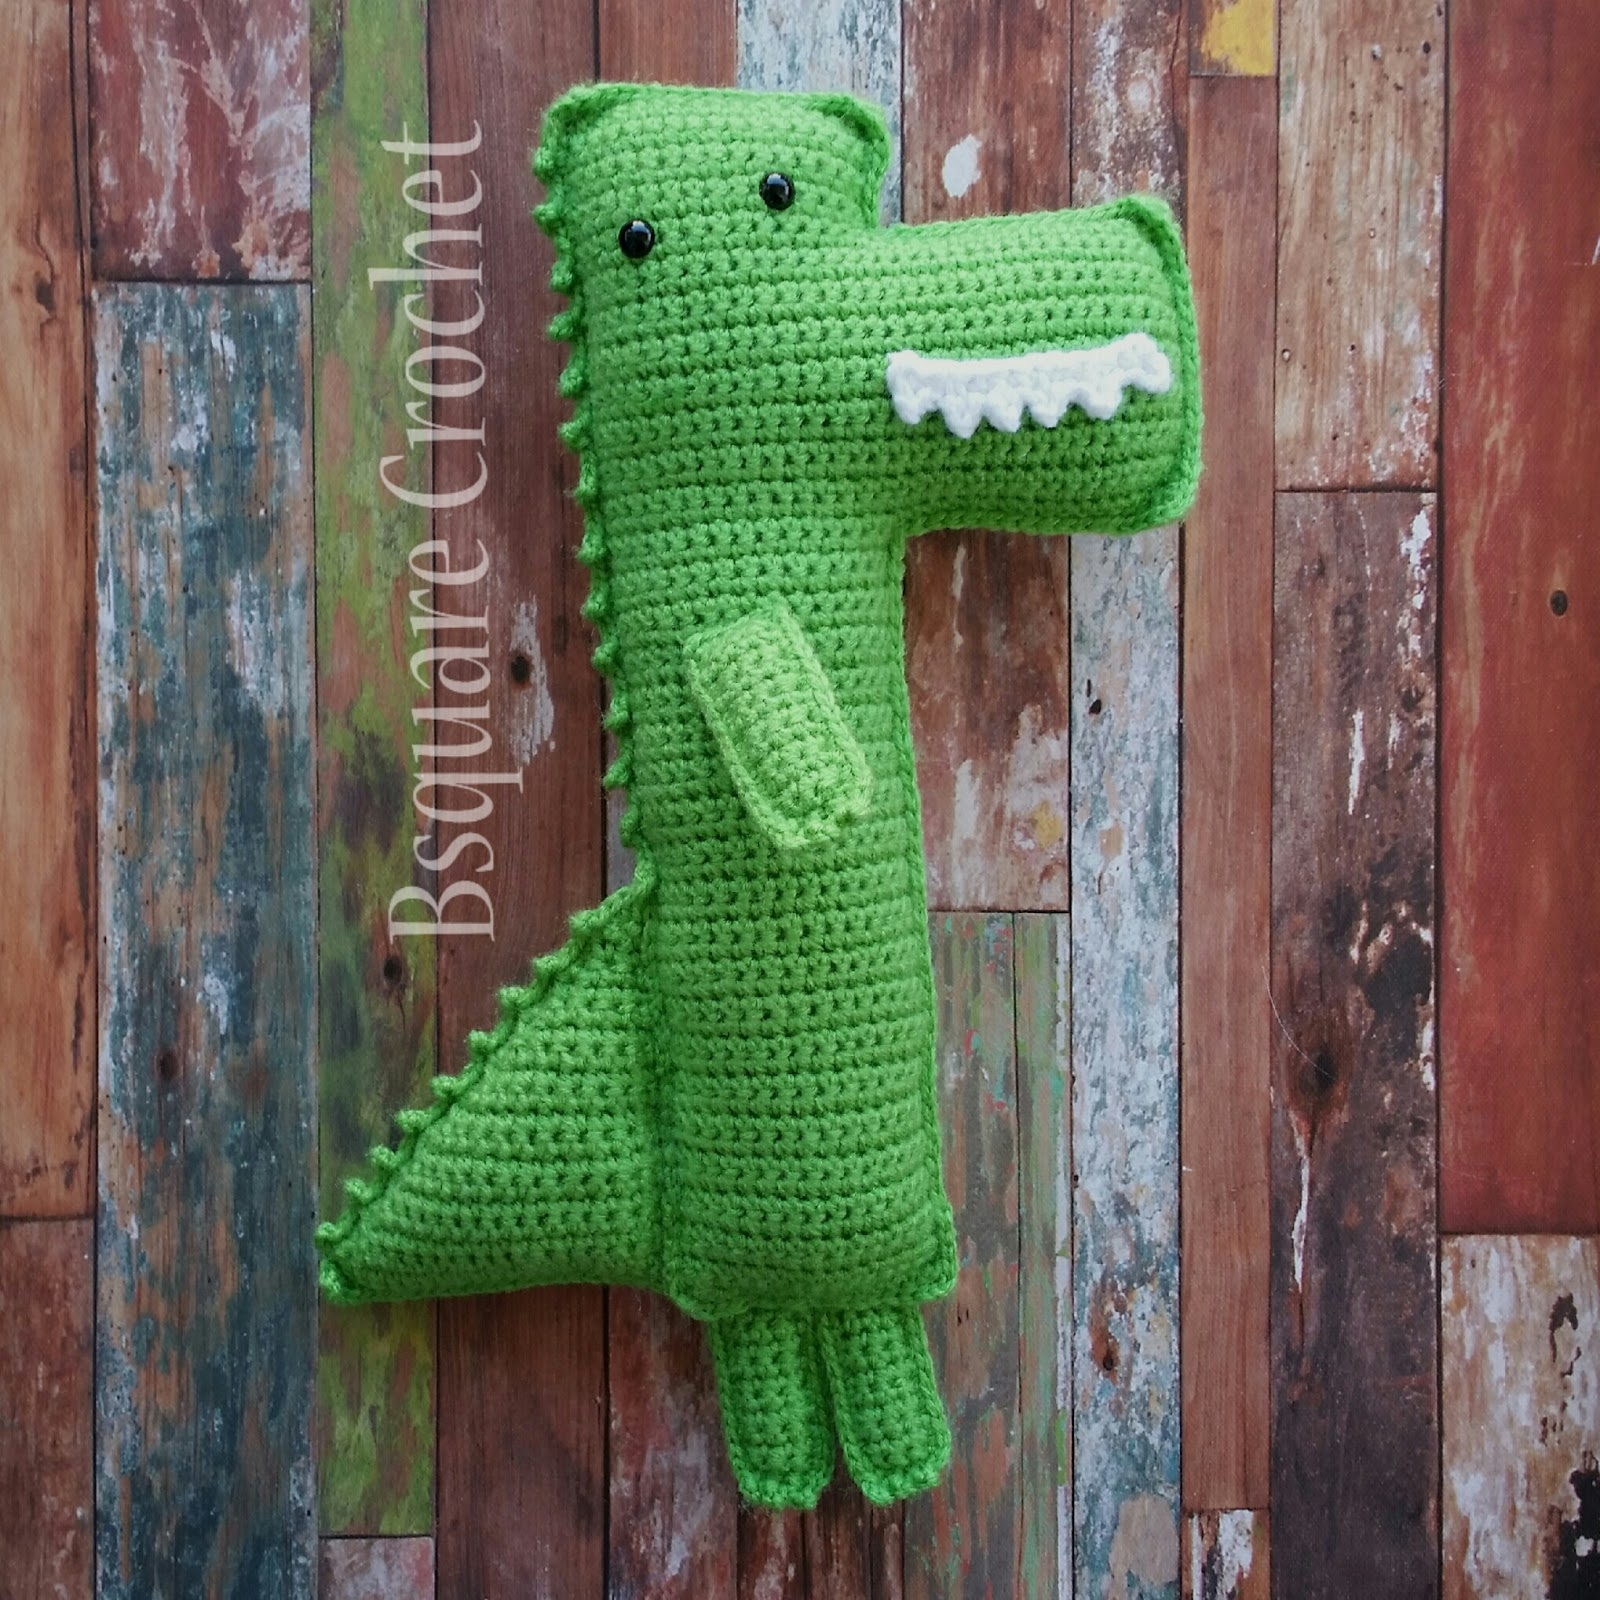 Contemporary Crochet Alligator Pattern Ornament - Easy Scarf ...